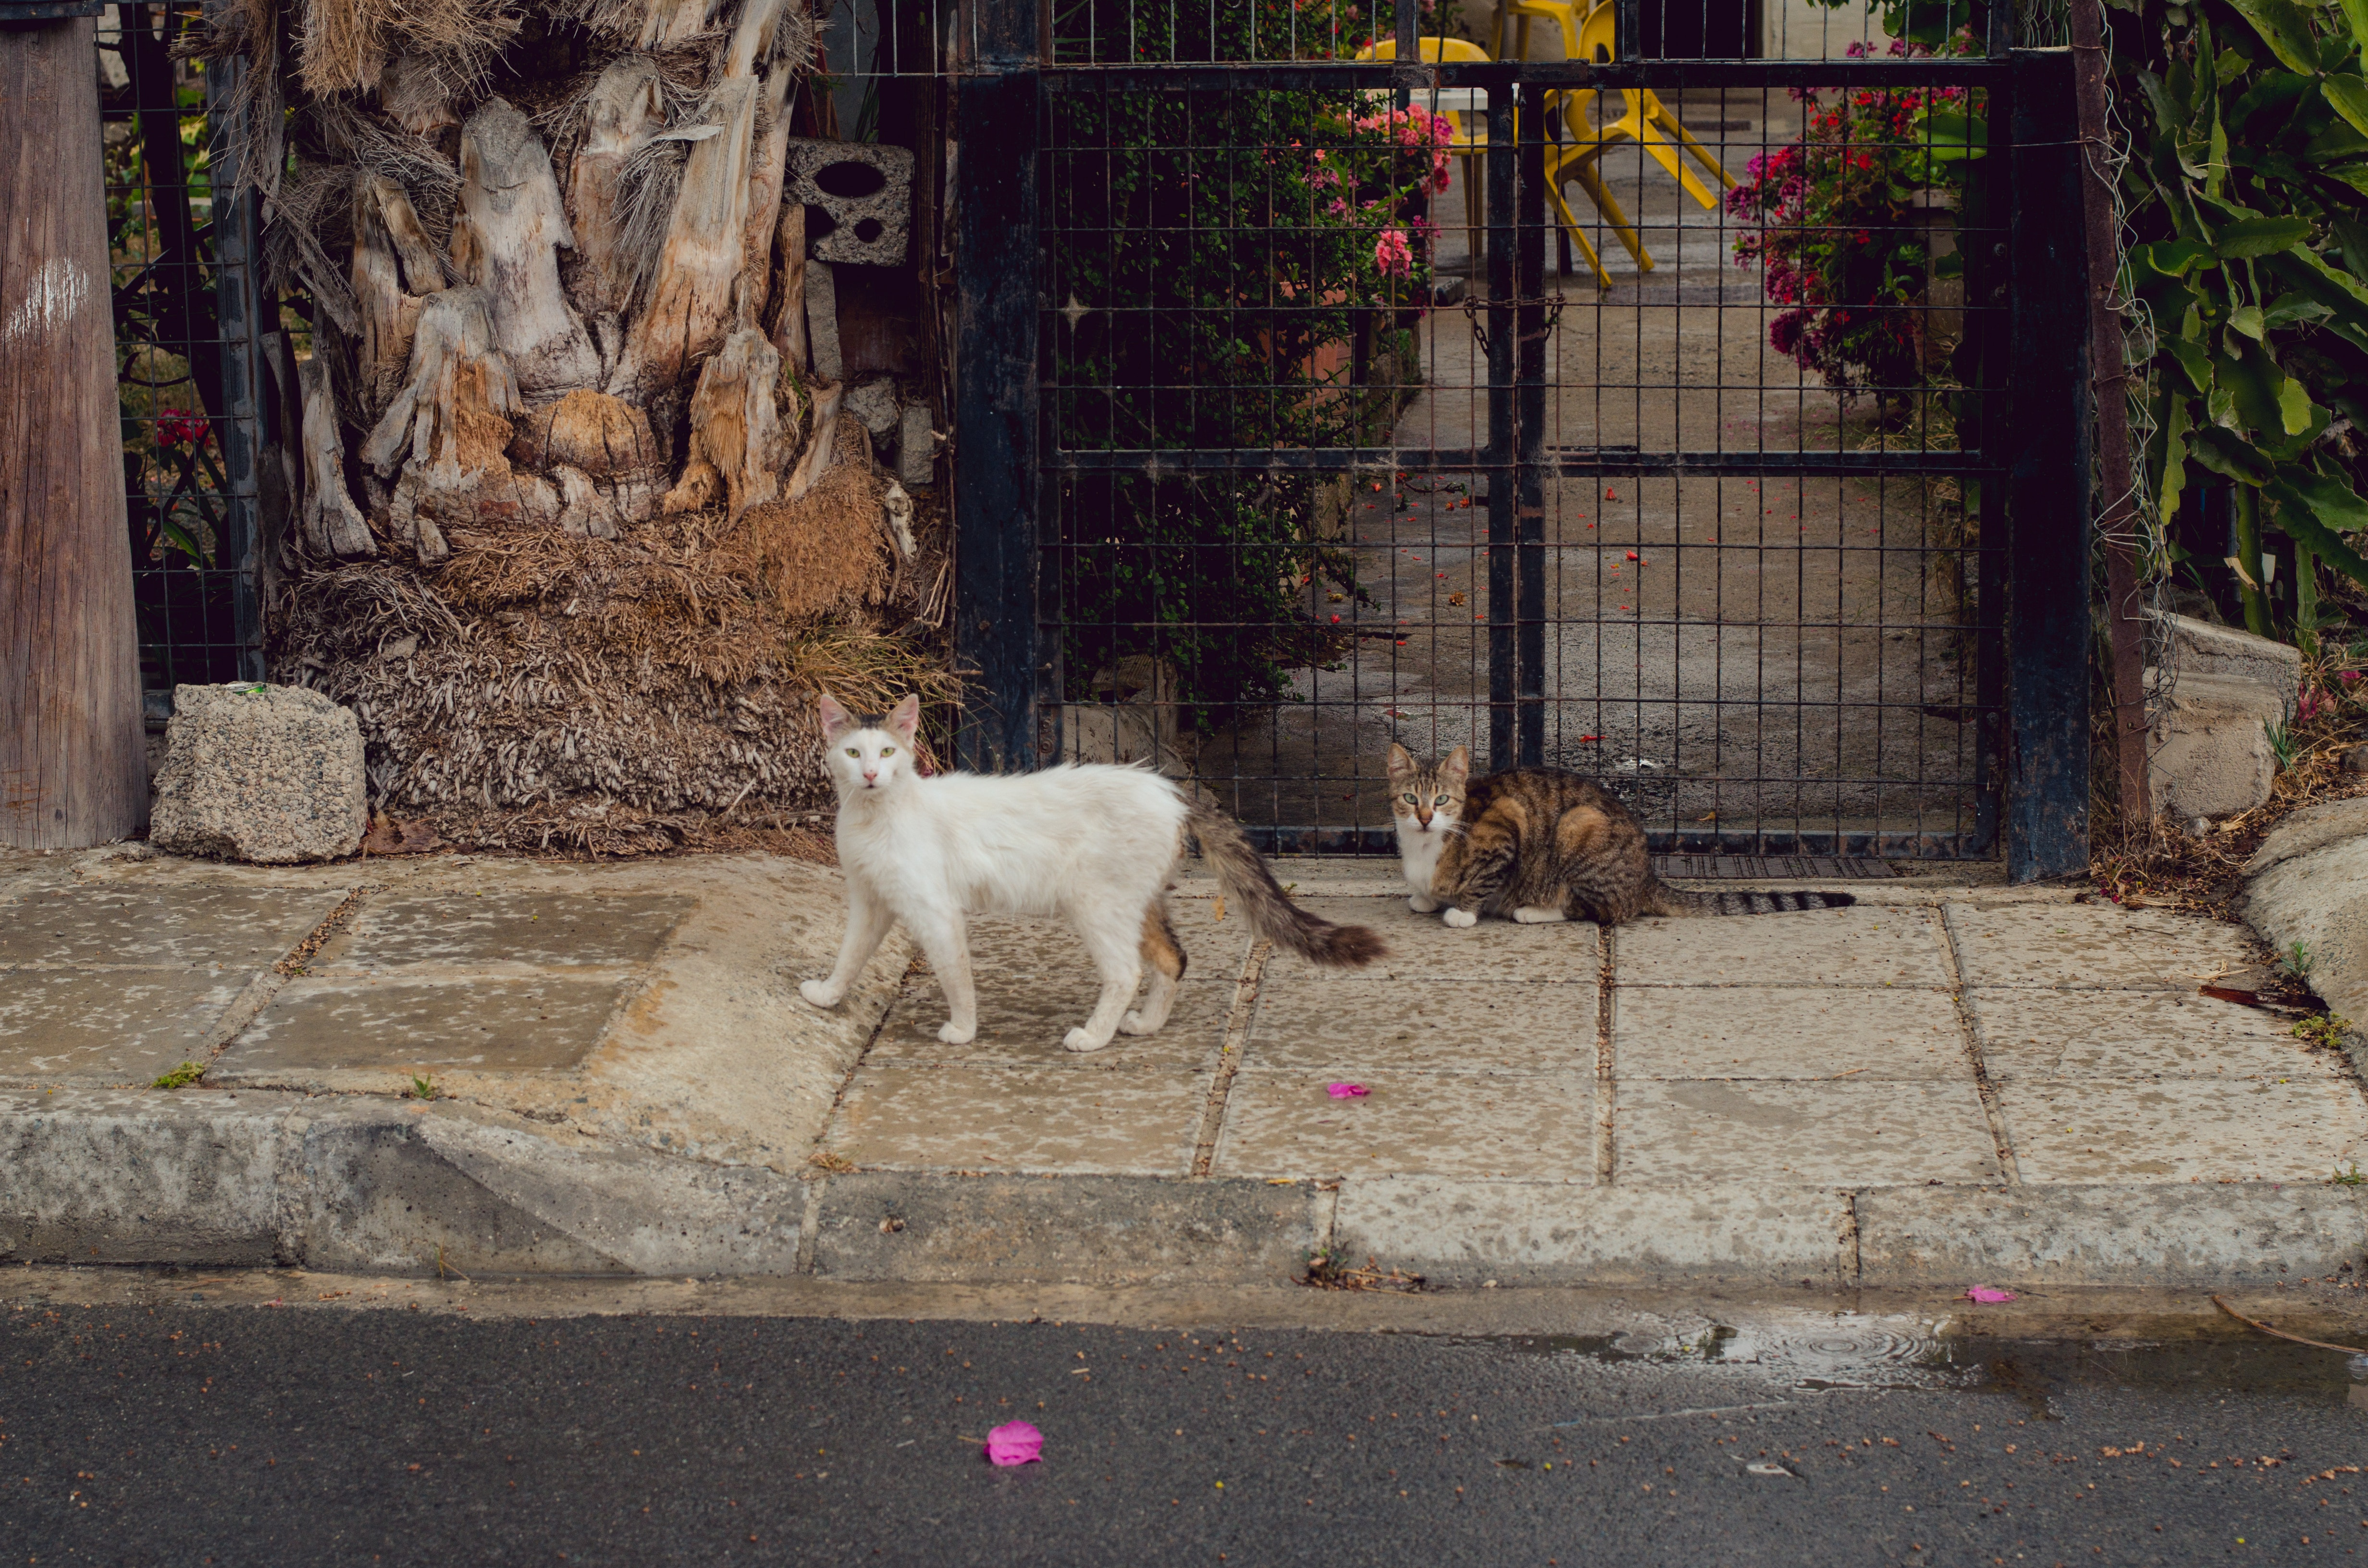 Two Short-fur White and Brown Cats Near Black Metal Gate, Animal, Cat, Cats, Domestic, HQ Photo